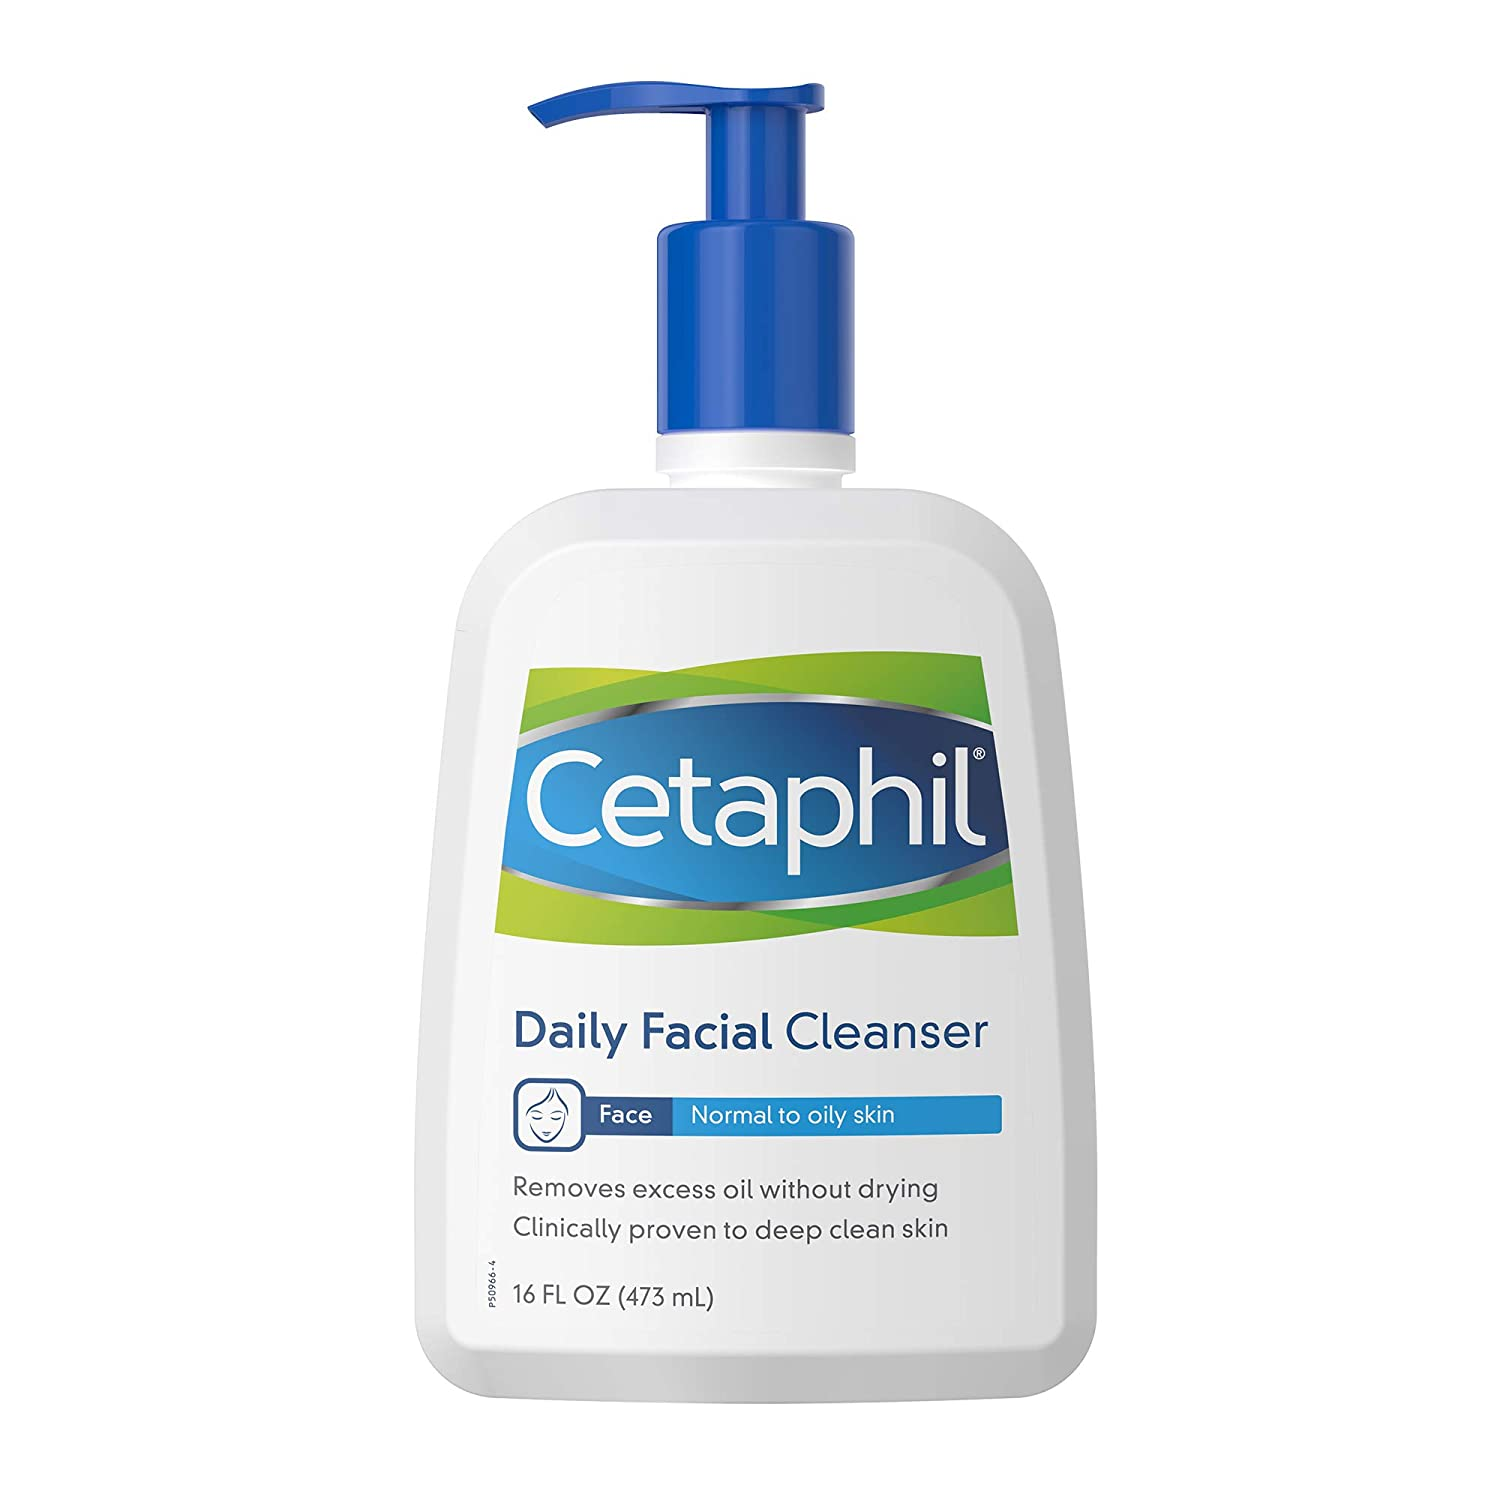 Cetaphil Daily Facial Cleanser for Normal To Oily Skin, 20 Fl Oz